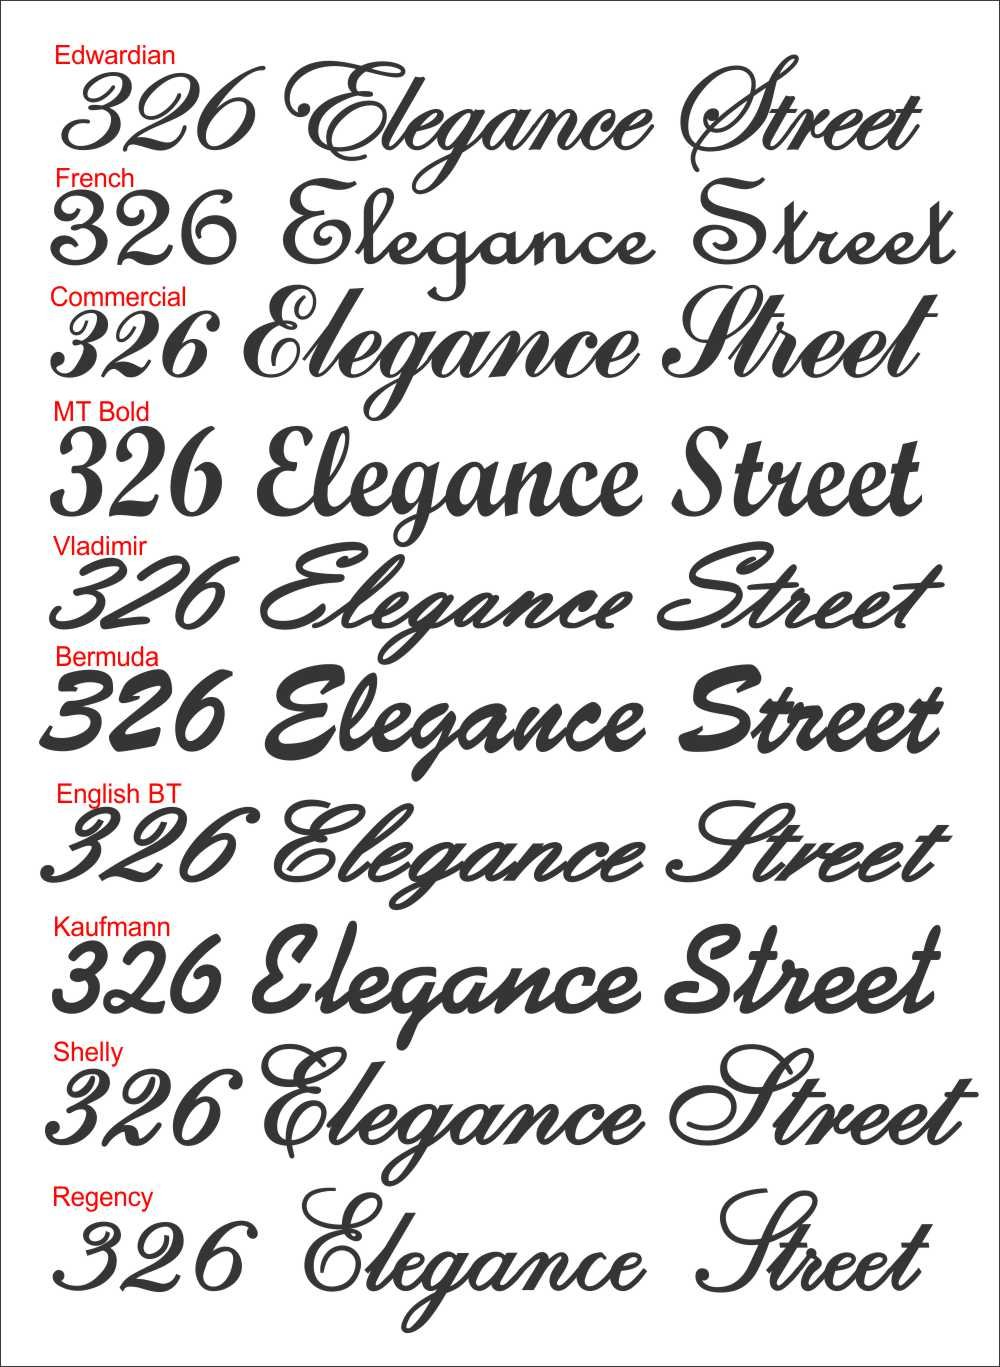 Script house number and street name signs in textured black bermuda font